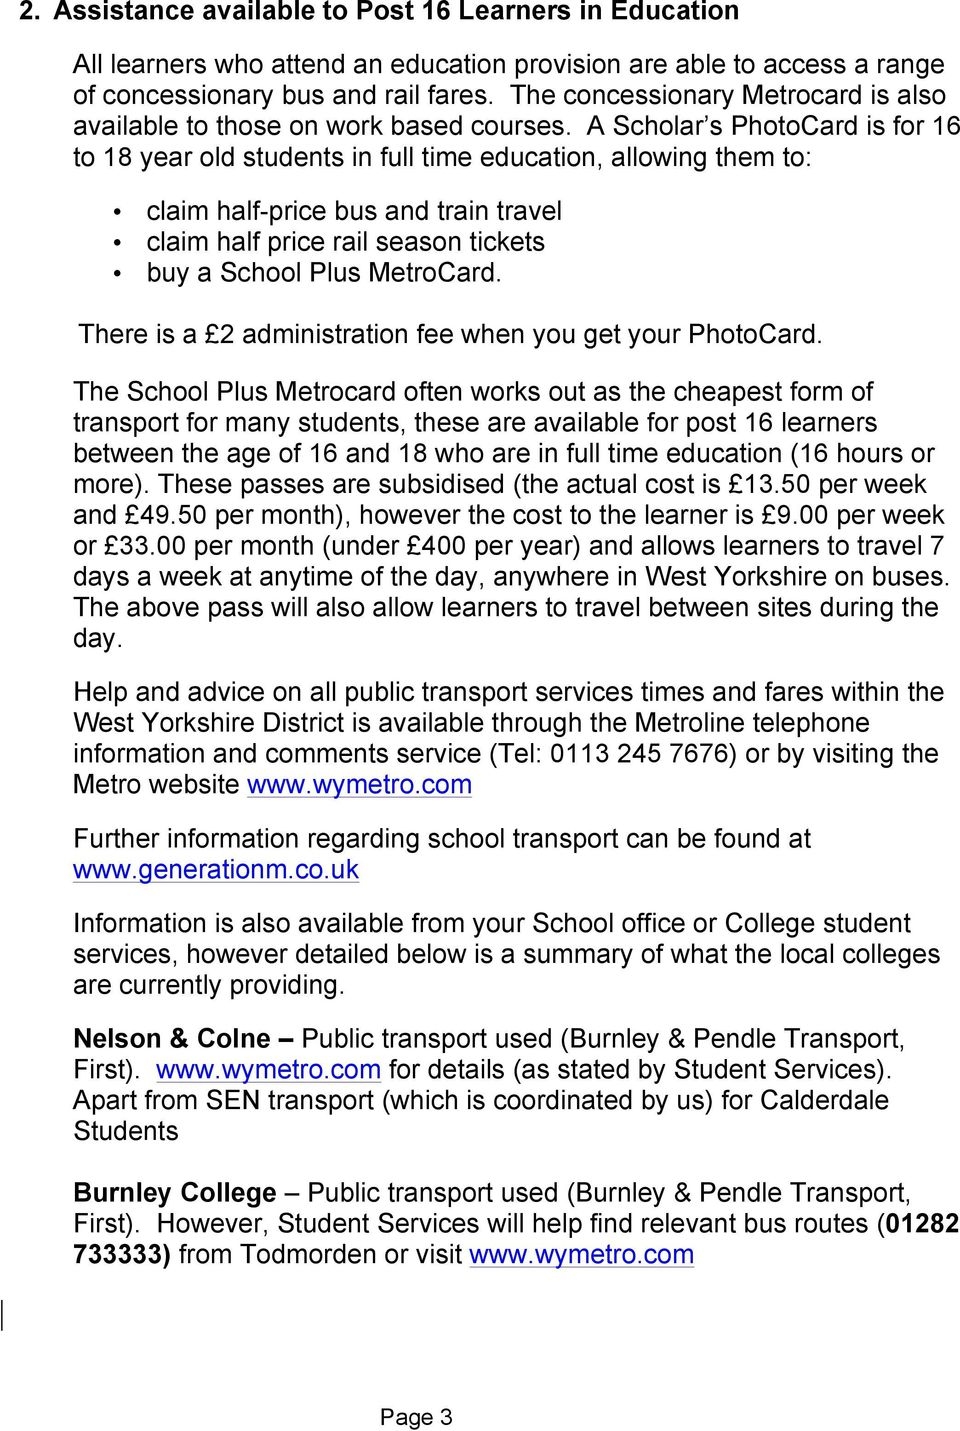 A Scholar s PhotoCard is for 16 to 18 year old students in full time education, allowing them to: claim half-price bus and train travel claim half price rail season tickets buy a School Plus